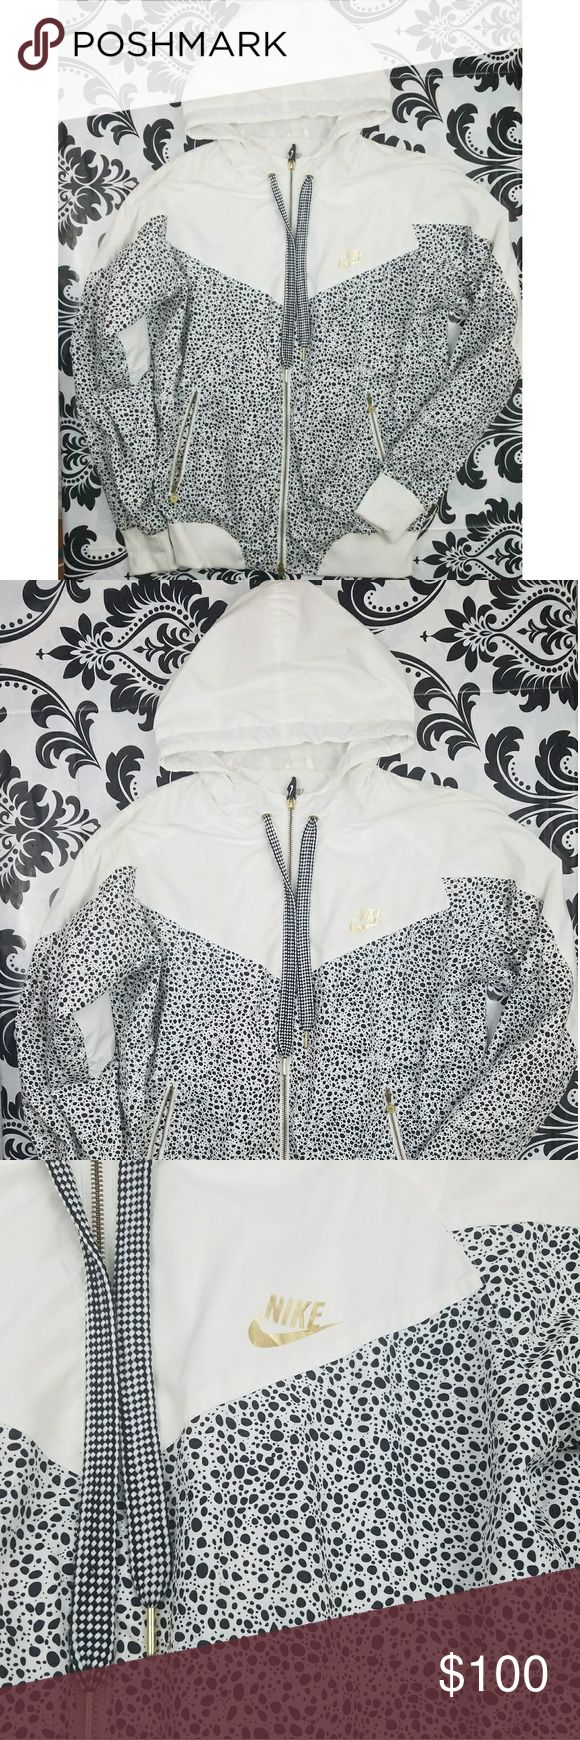 Nike black, white and gold zip up kurtka Women's Nike brand kurtka zip up light weight jacket  White with black polka dots all over  Gold detail throughout  Gold zipper down middle and on pockets  Gold Nike logo and black and white Nike tennis shoe on zipper Pre Owned good condition  Shoes small signs of wear overall good condition  Women's Size large Nike Jackets & Coats